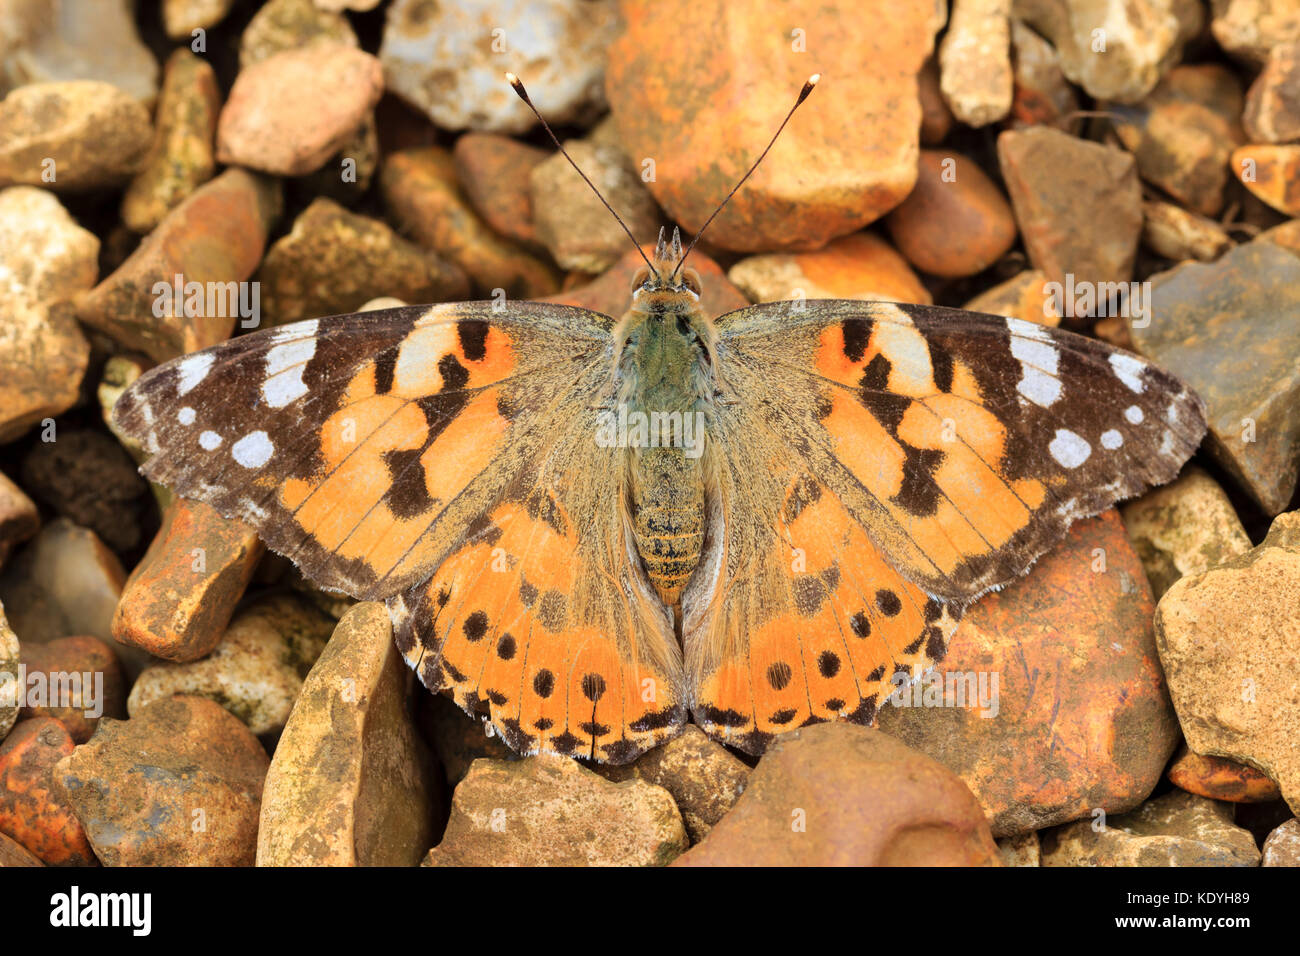 UK migrant painted lady butterfly, Vanessa cardui, camouflaged against a backdrop of pebbles - Stock Image